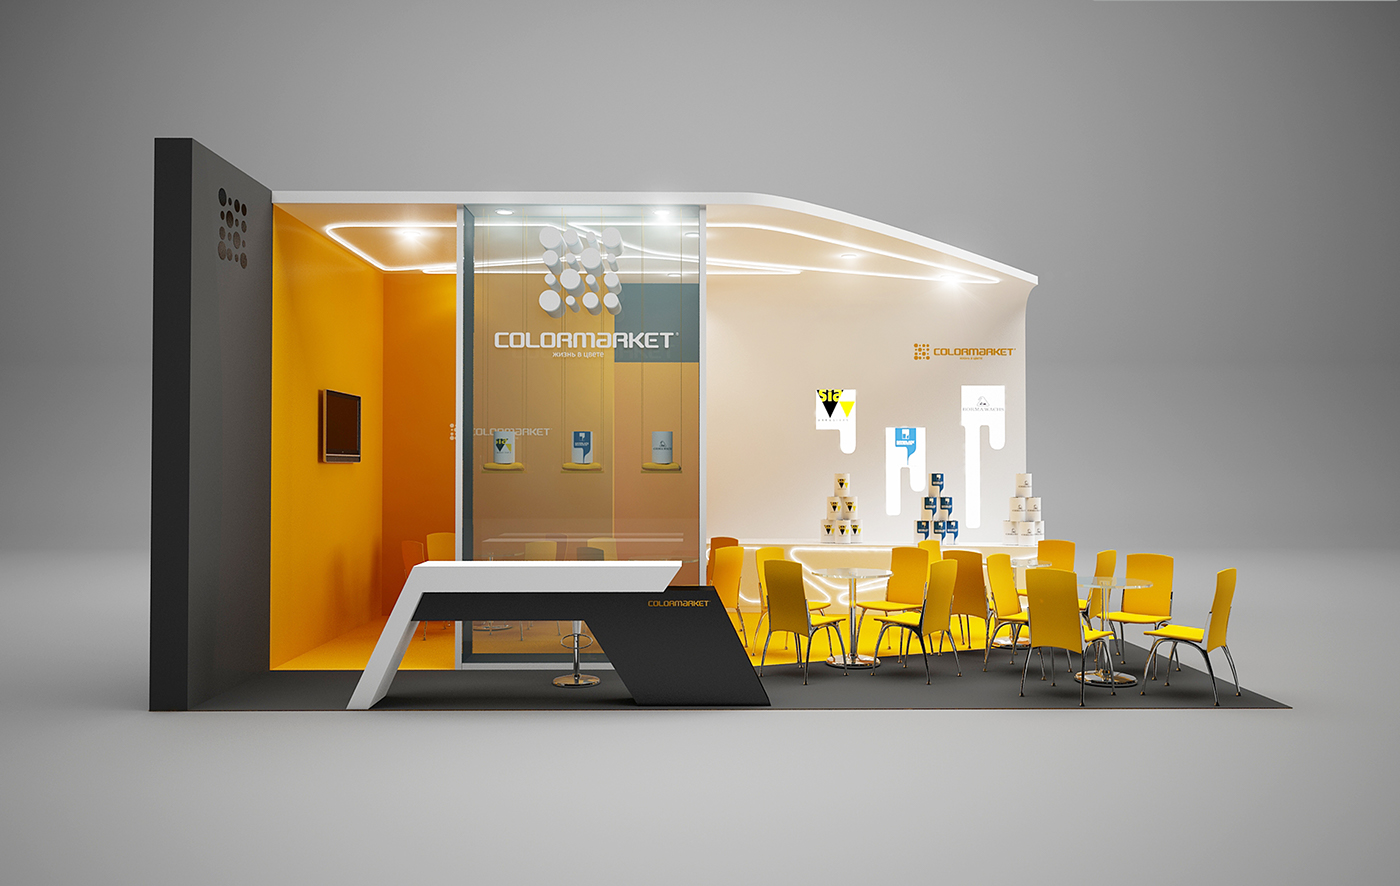 Exhibition Stand Behance : Colormarket exhibition stand on behance